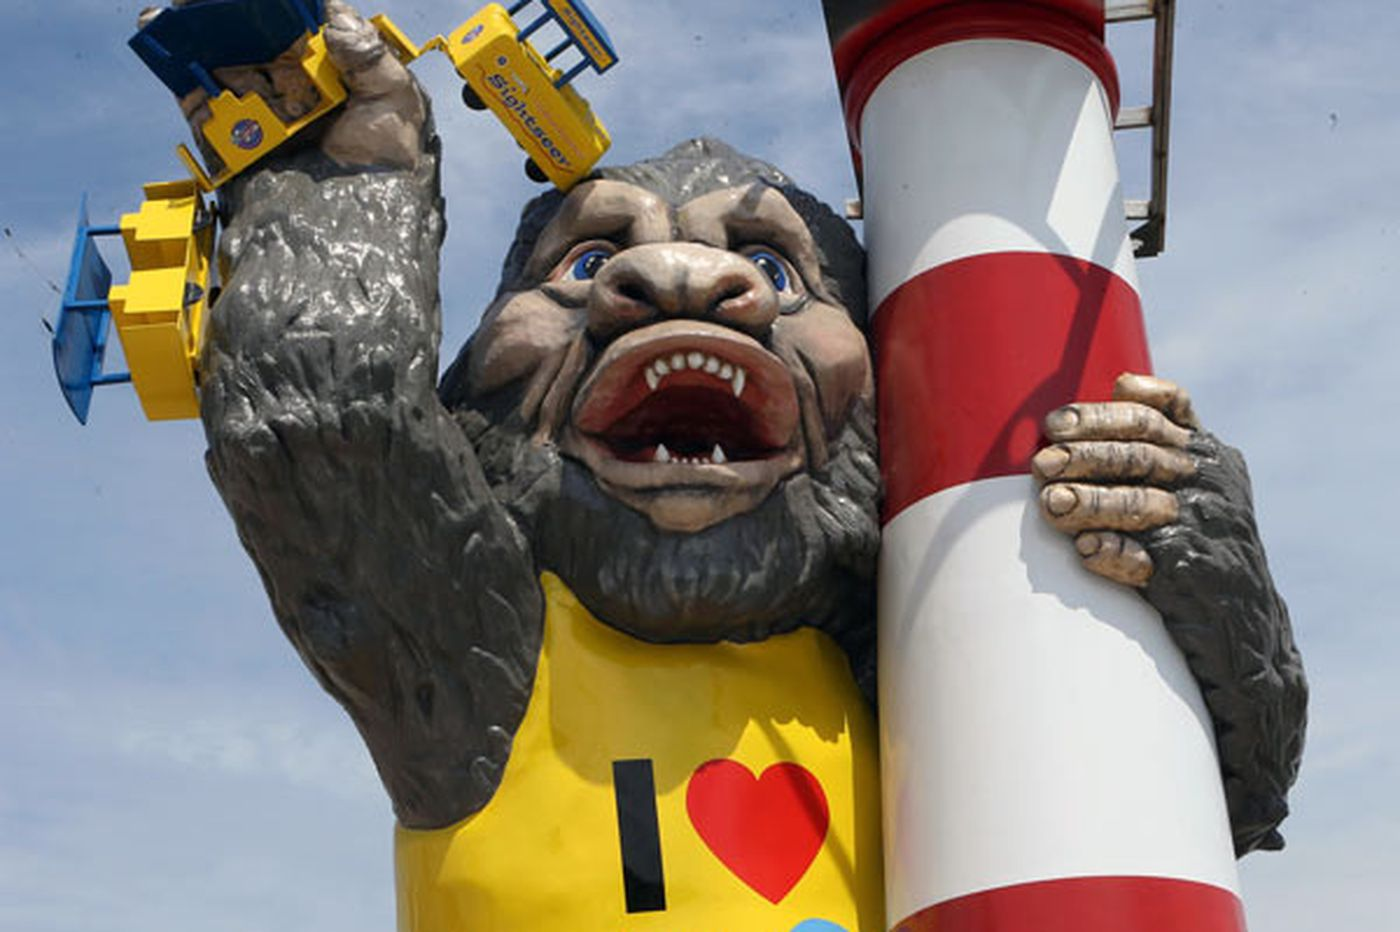 Kong's return to Wildwood